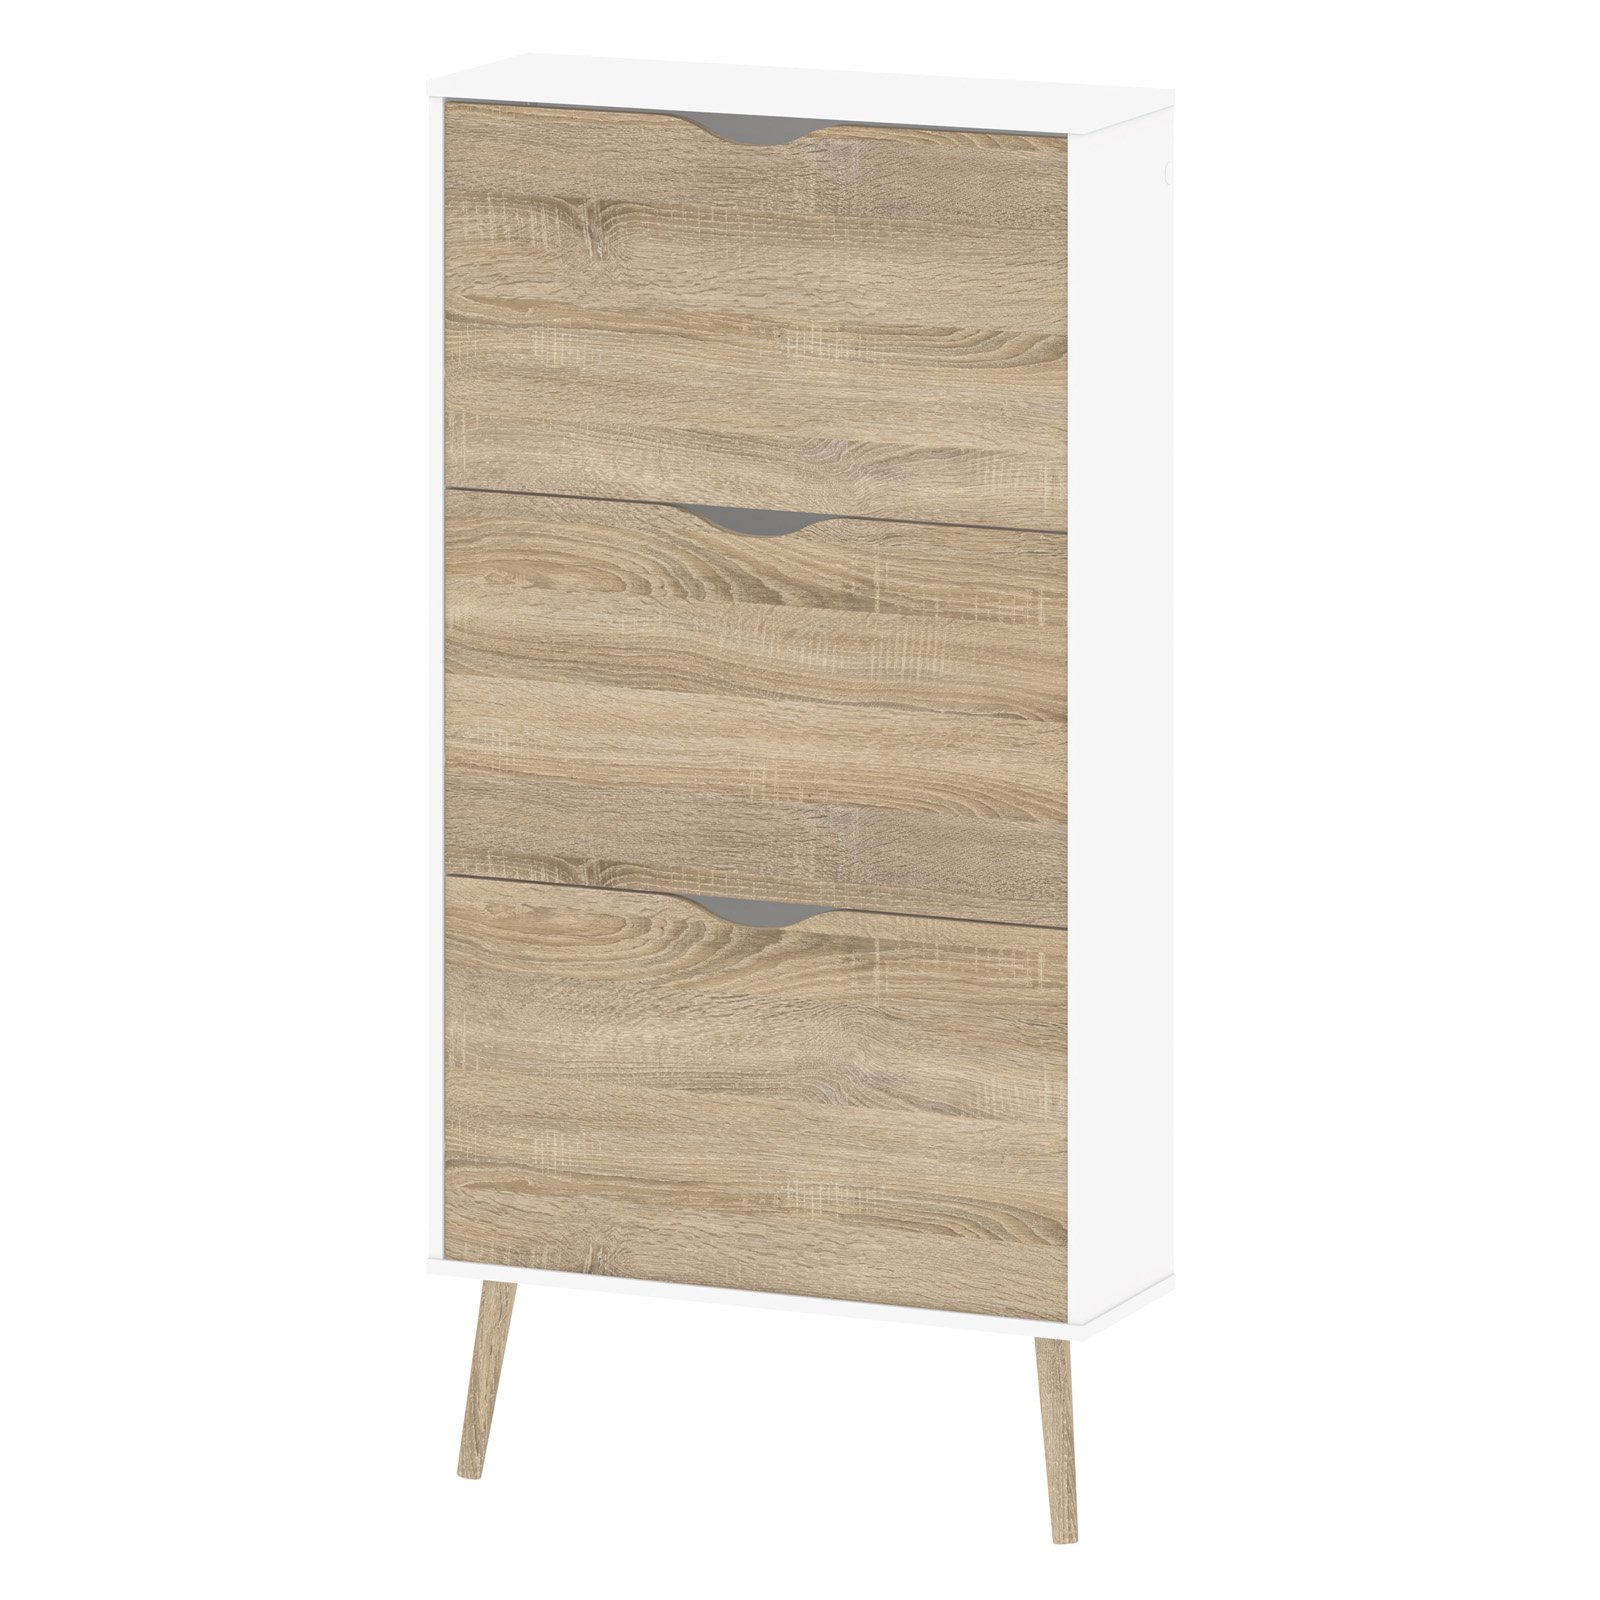 Delicieux Product Image TVILUM Diana 3 Drawer Shoe Cabinet, White/Oak Structure  Converted To Inflex Kit